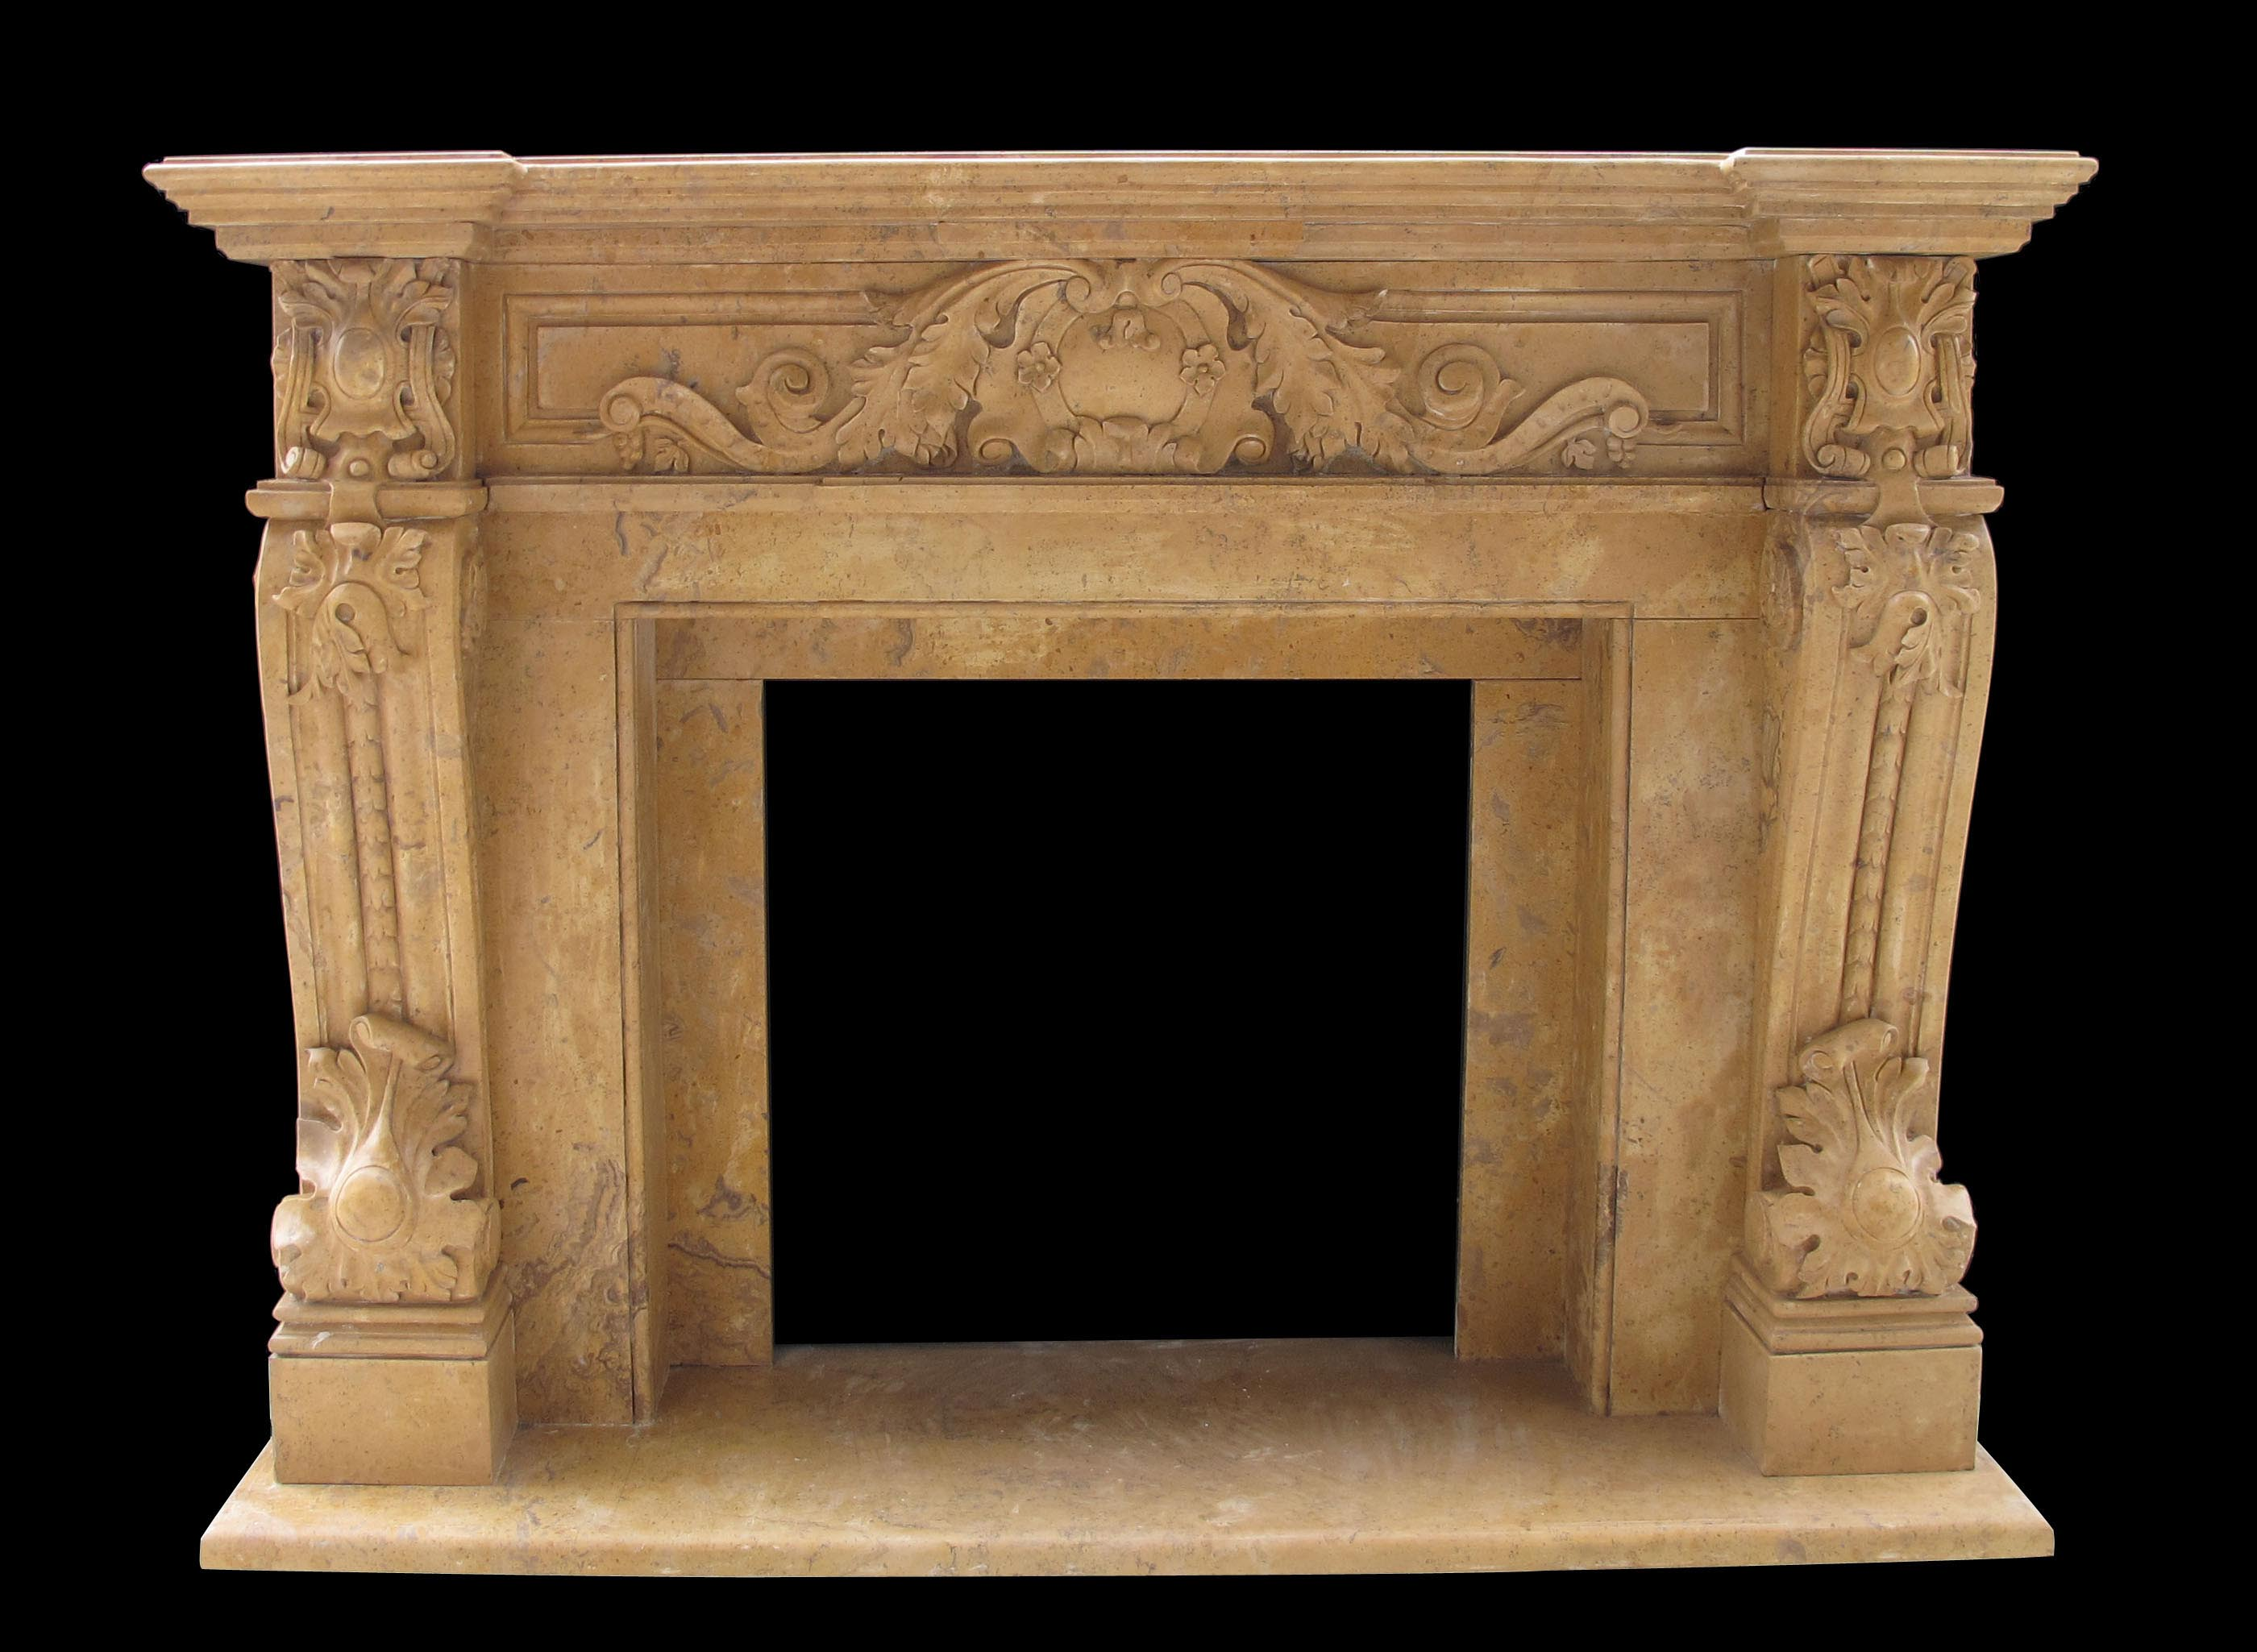 verona marble mantel french fireplace french marble antique. Black Bedroom Furniture Sets. Home Design Ideas